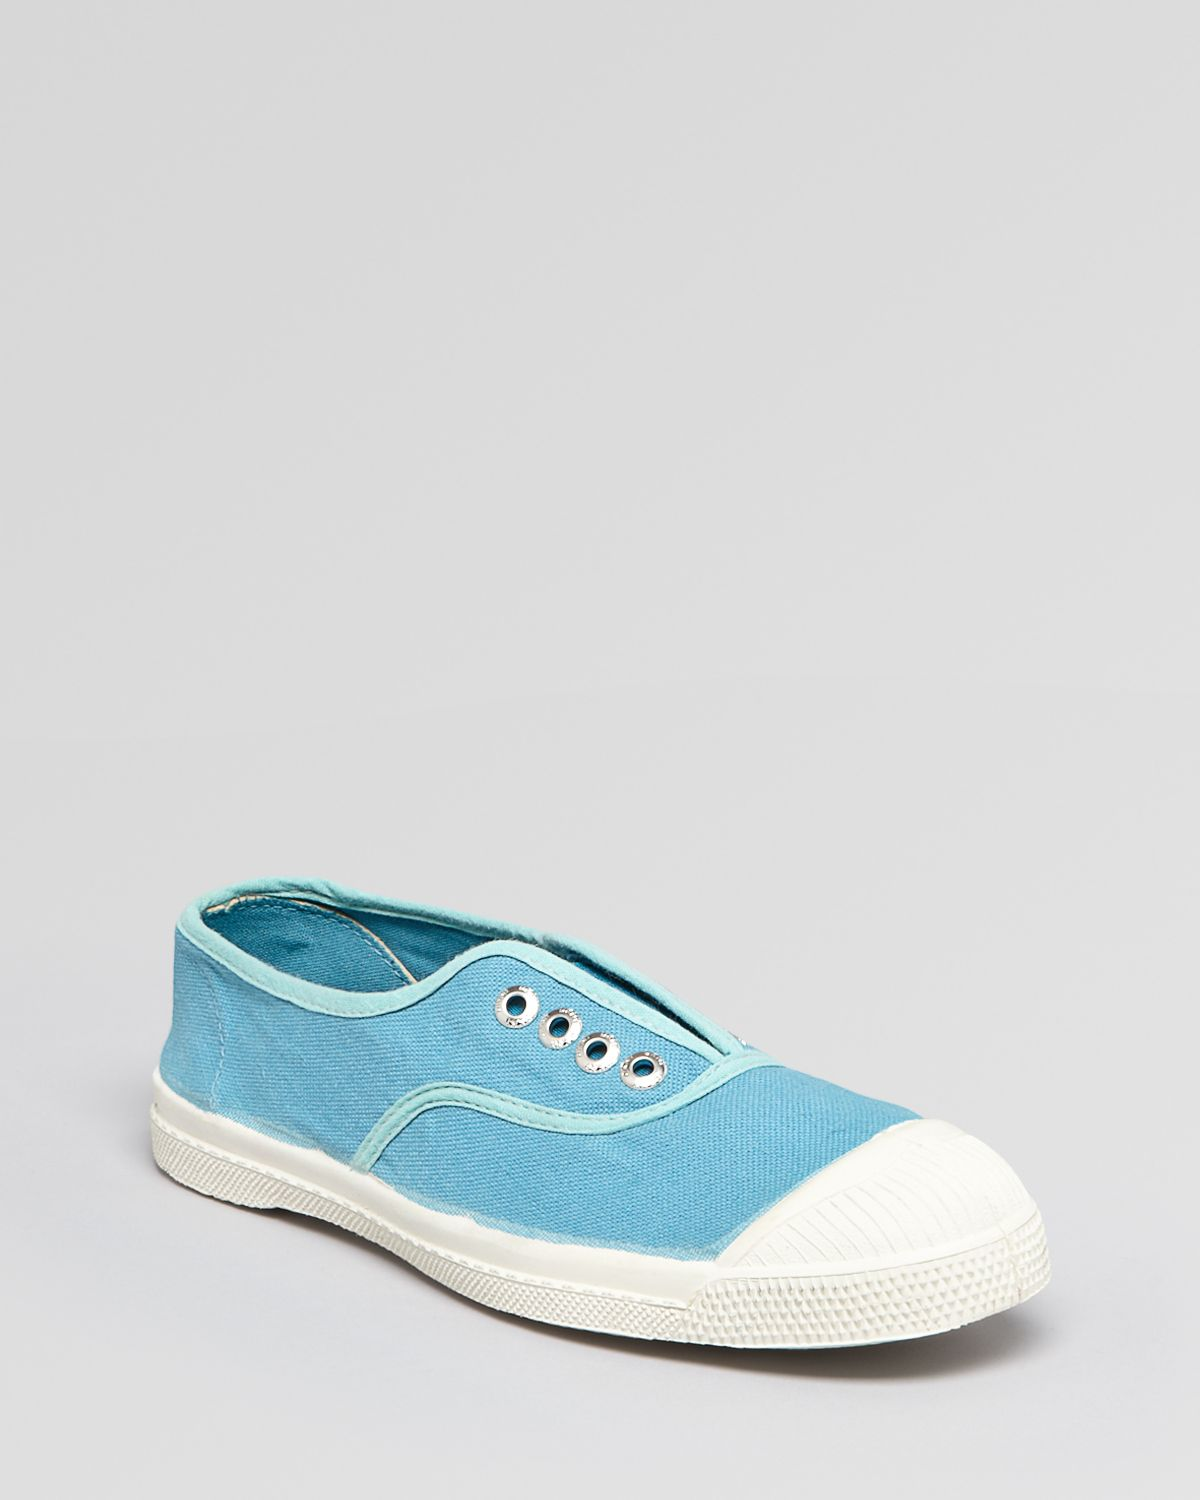 DKNY Slip On Sneakers Bensimon Tennis Elly in Turquoise (Orange)